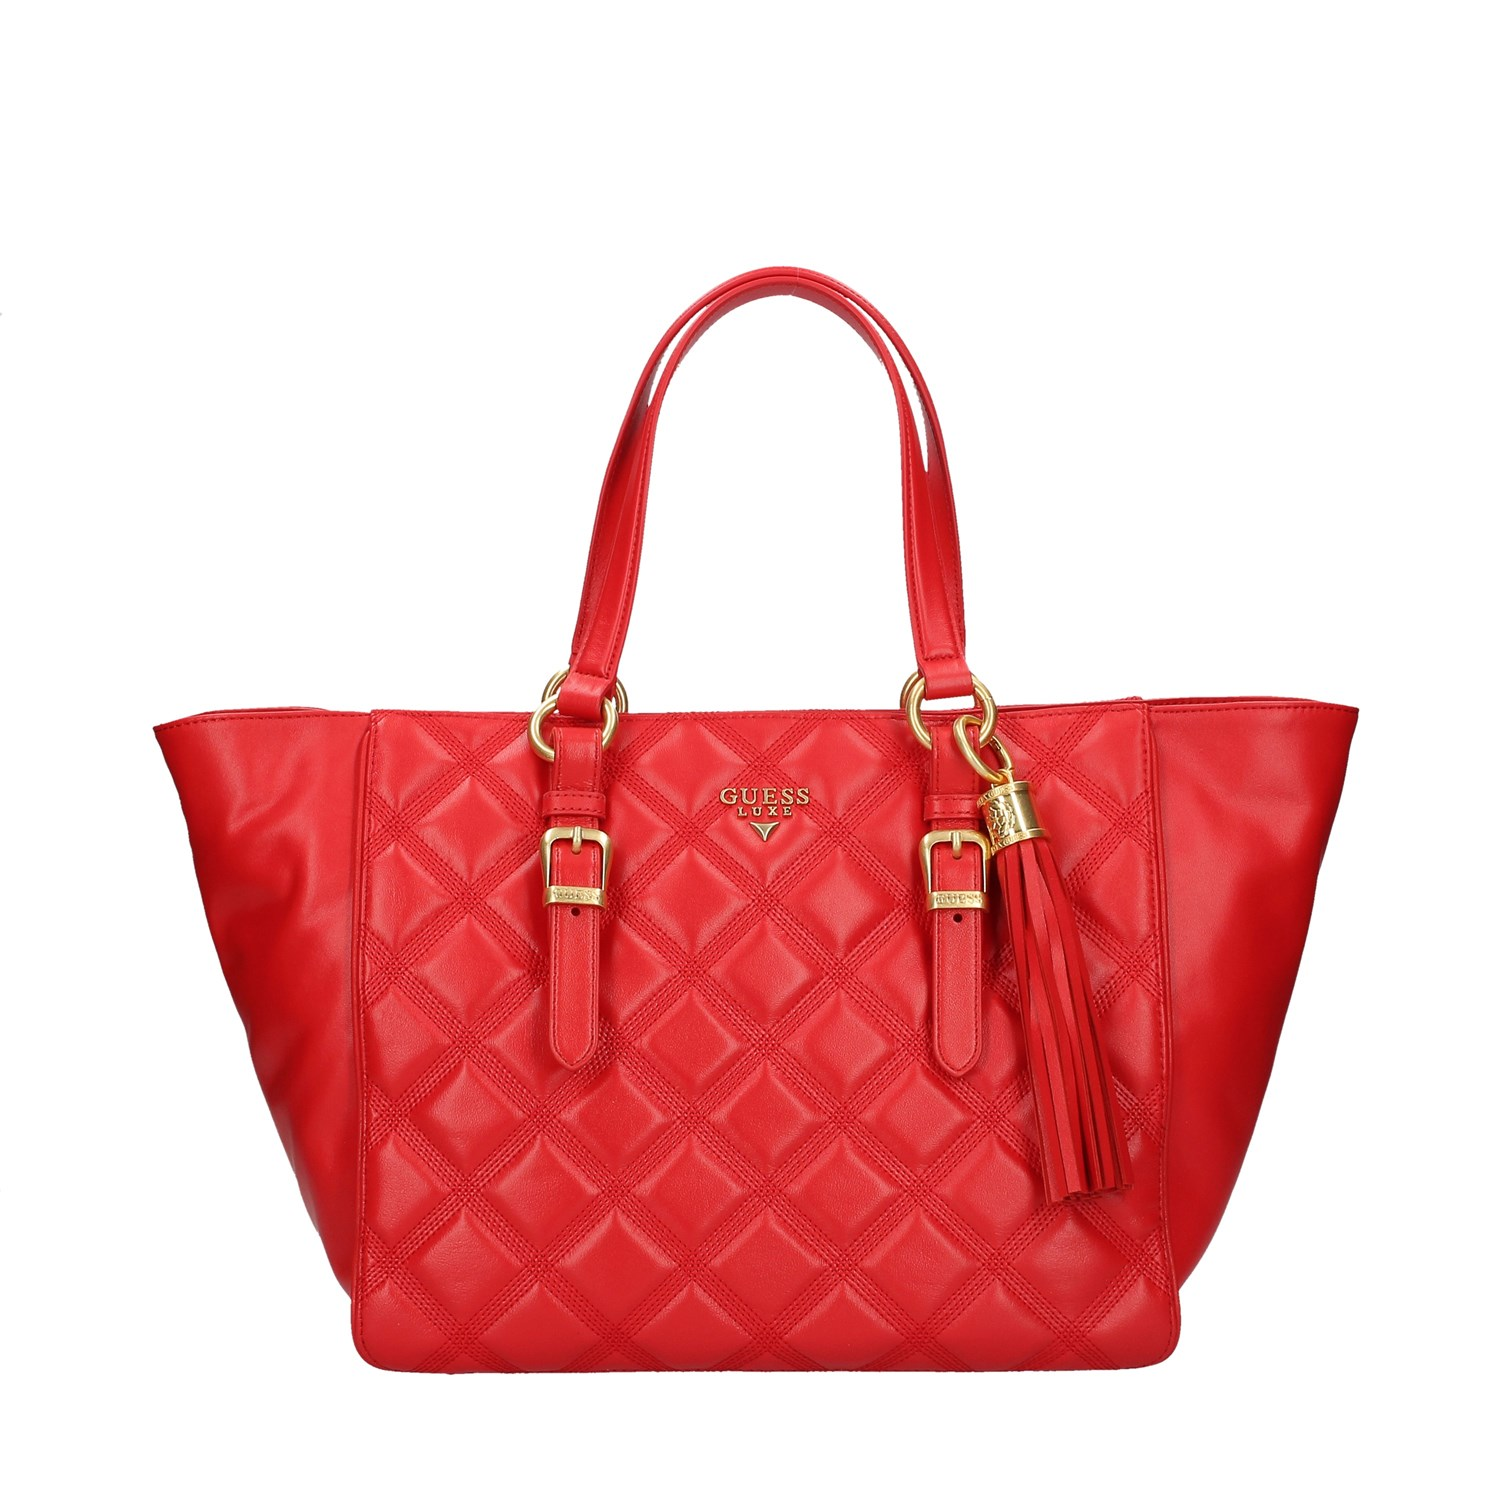 ad0a0113b6 Guess Shopping Bag Red | Shopping Bag Donna | Stage Accessories